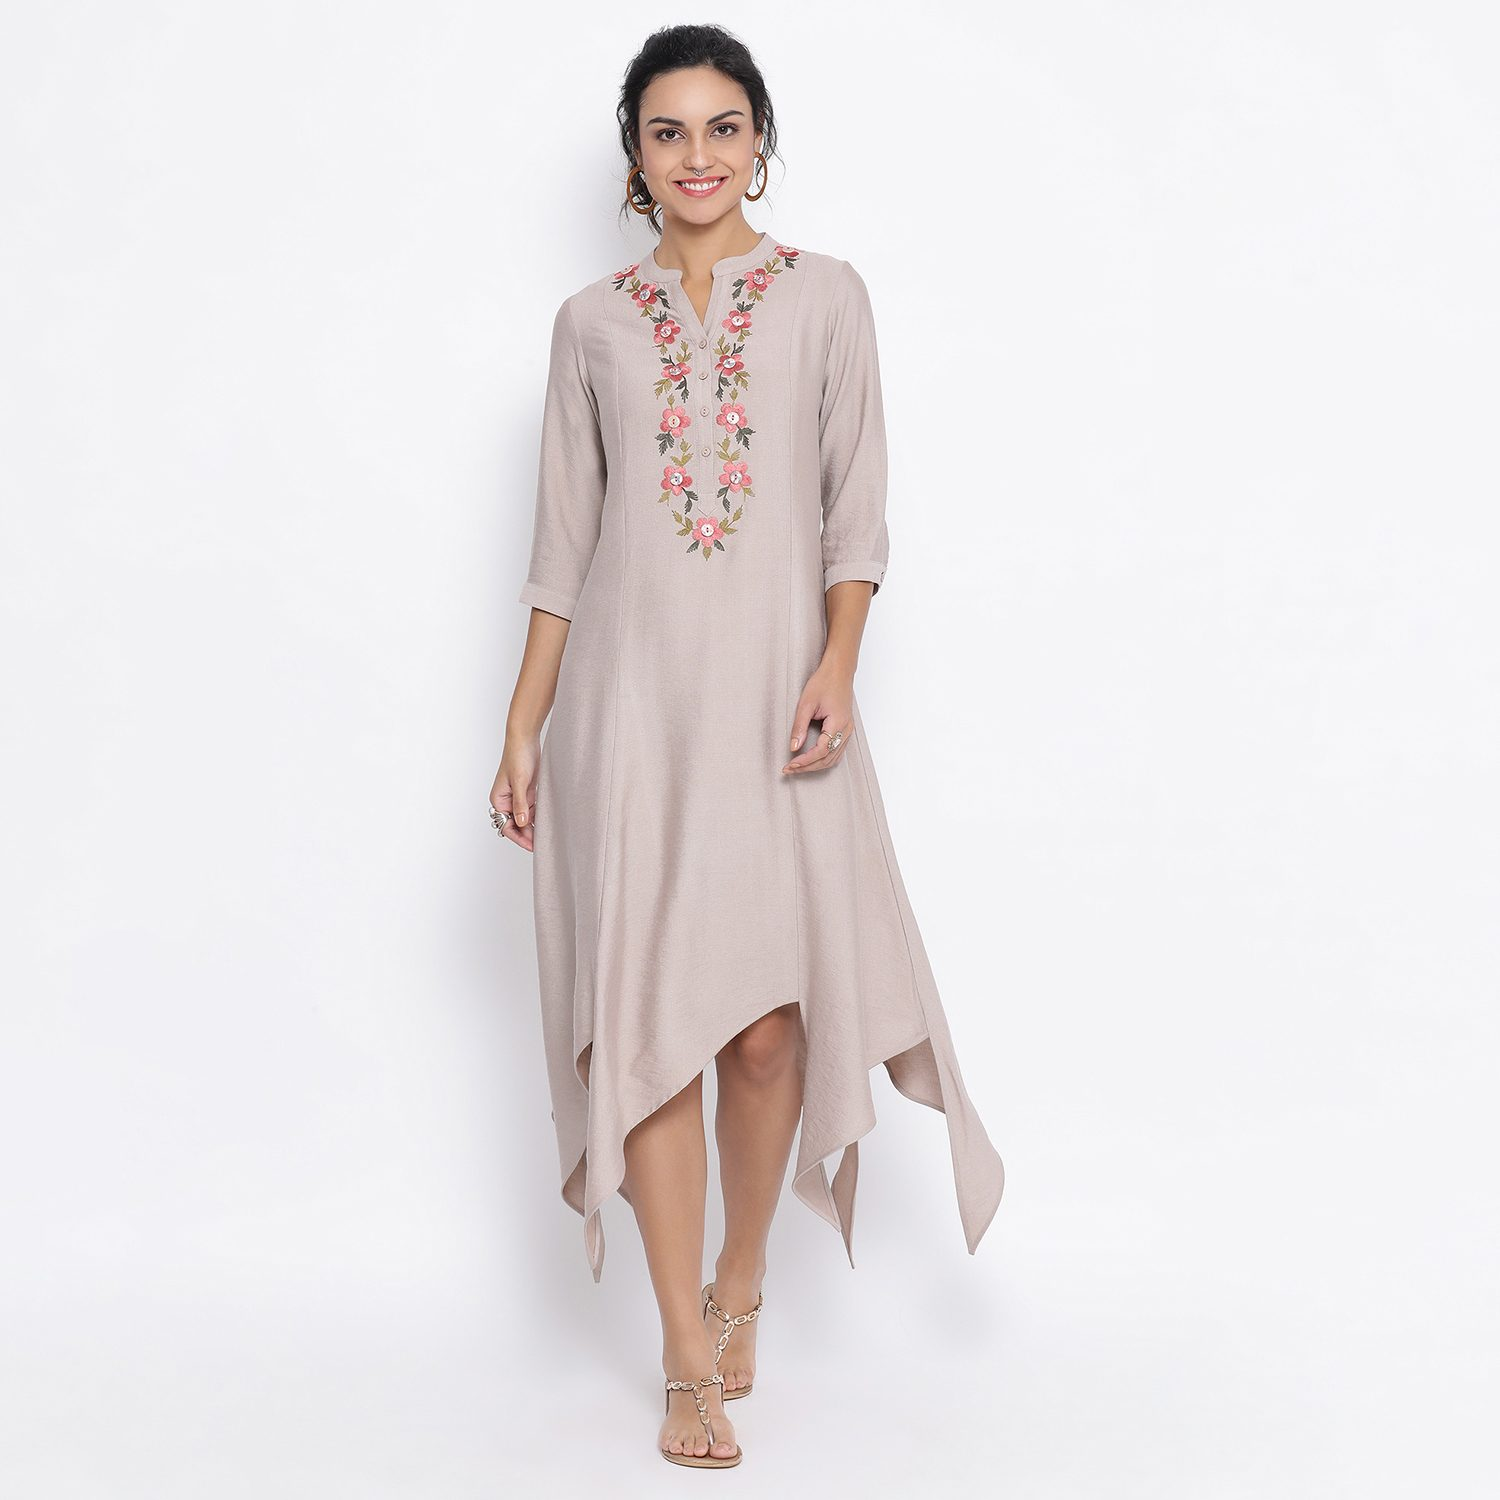 Buy Beige Triangle Dress With Button Embroidery For Women